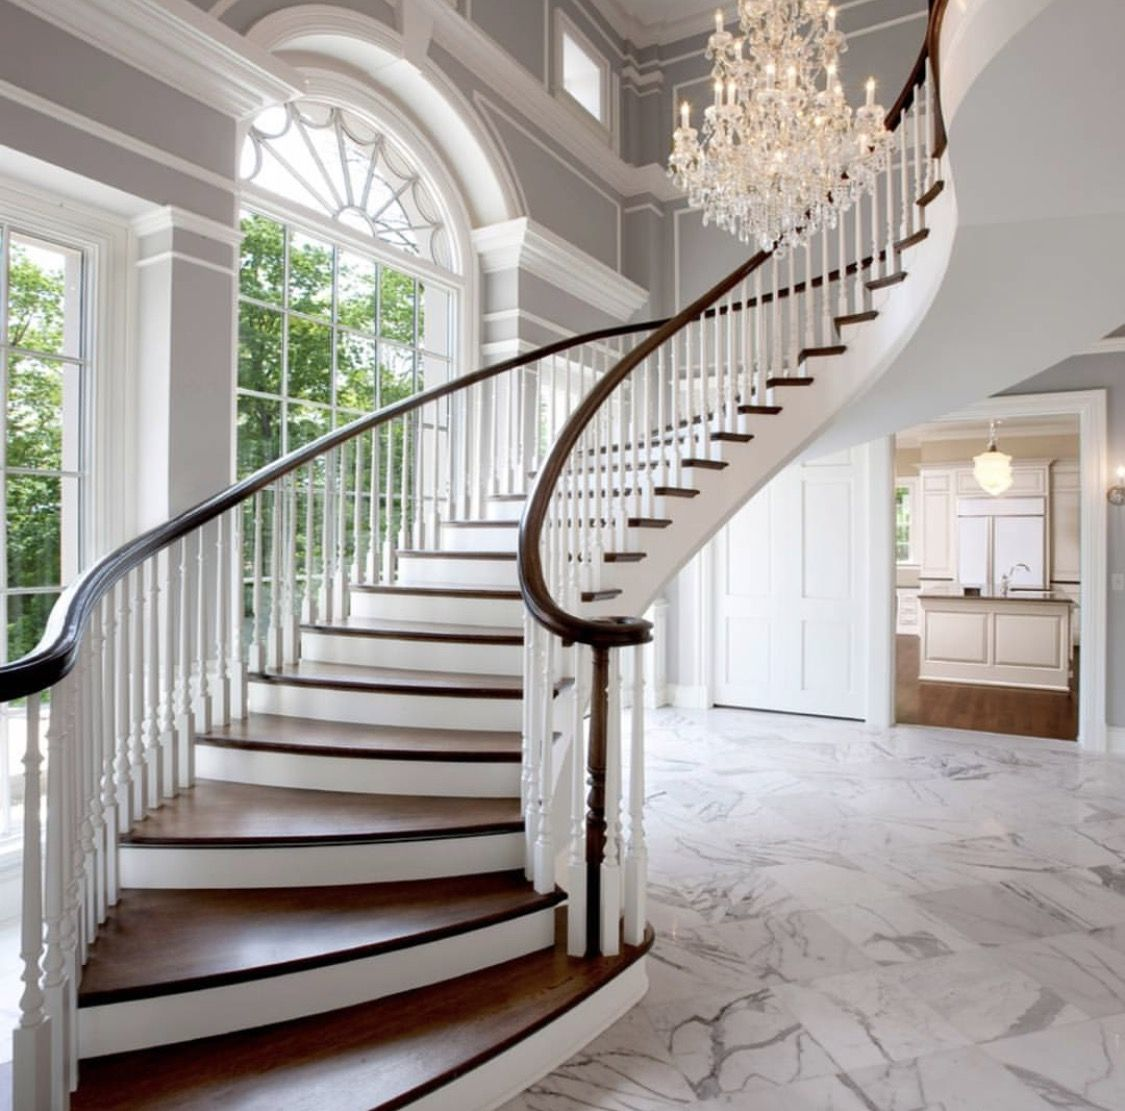 16 Elegant Traditional Staircase Designs That Will Amaze You: Pin By ⚜Suzanne Snyder Clickett On •GRAND ENTRANCE• In